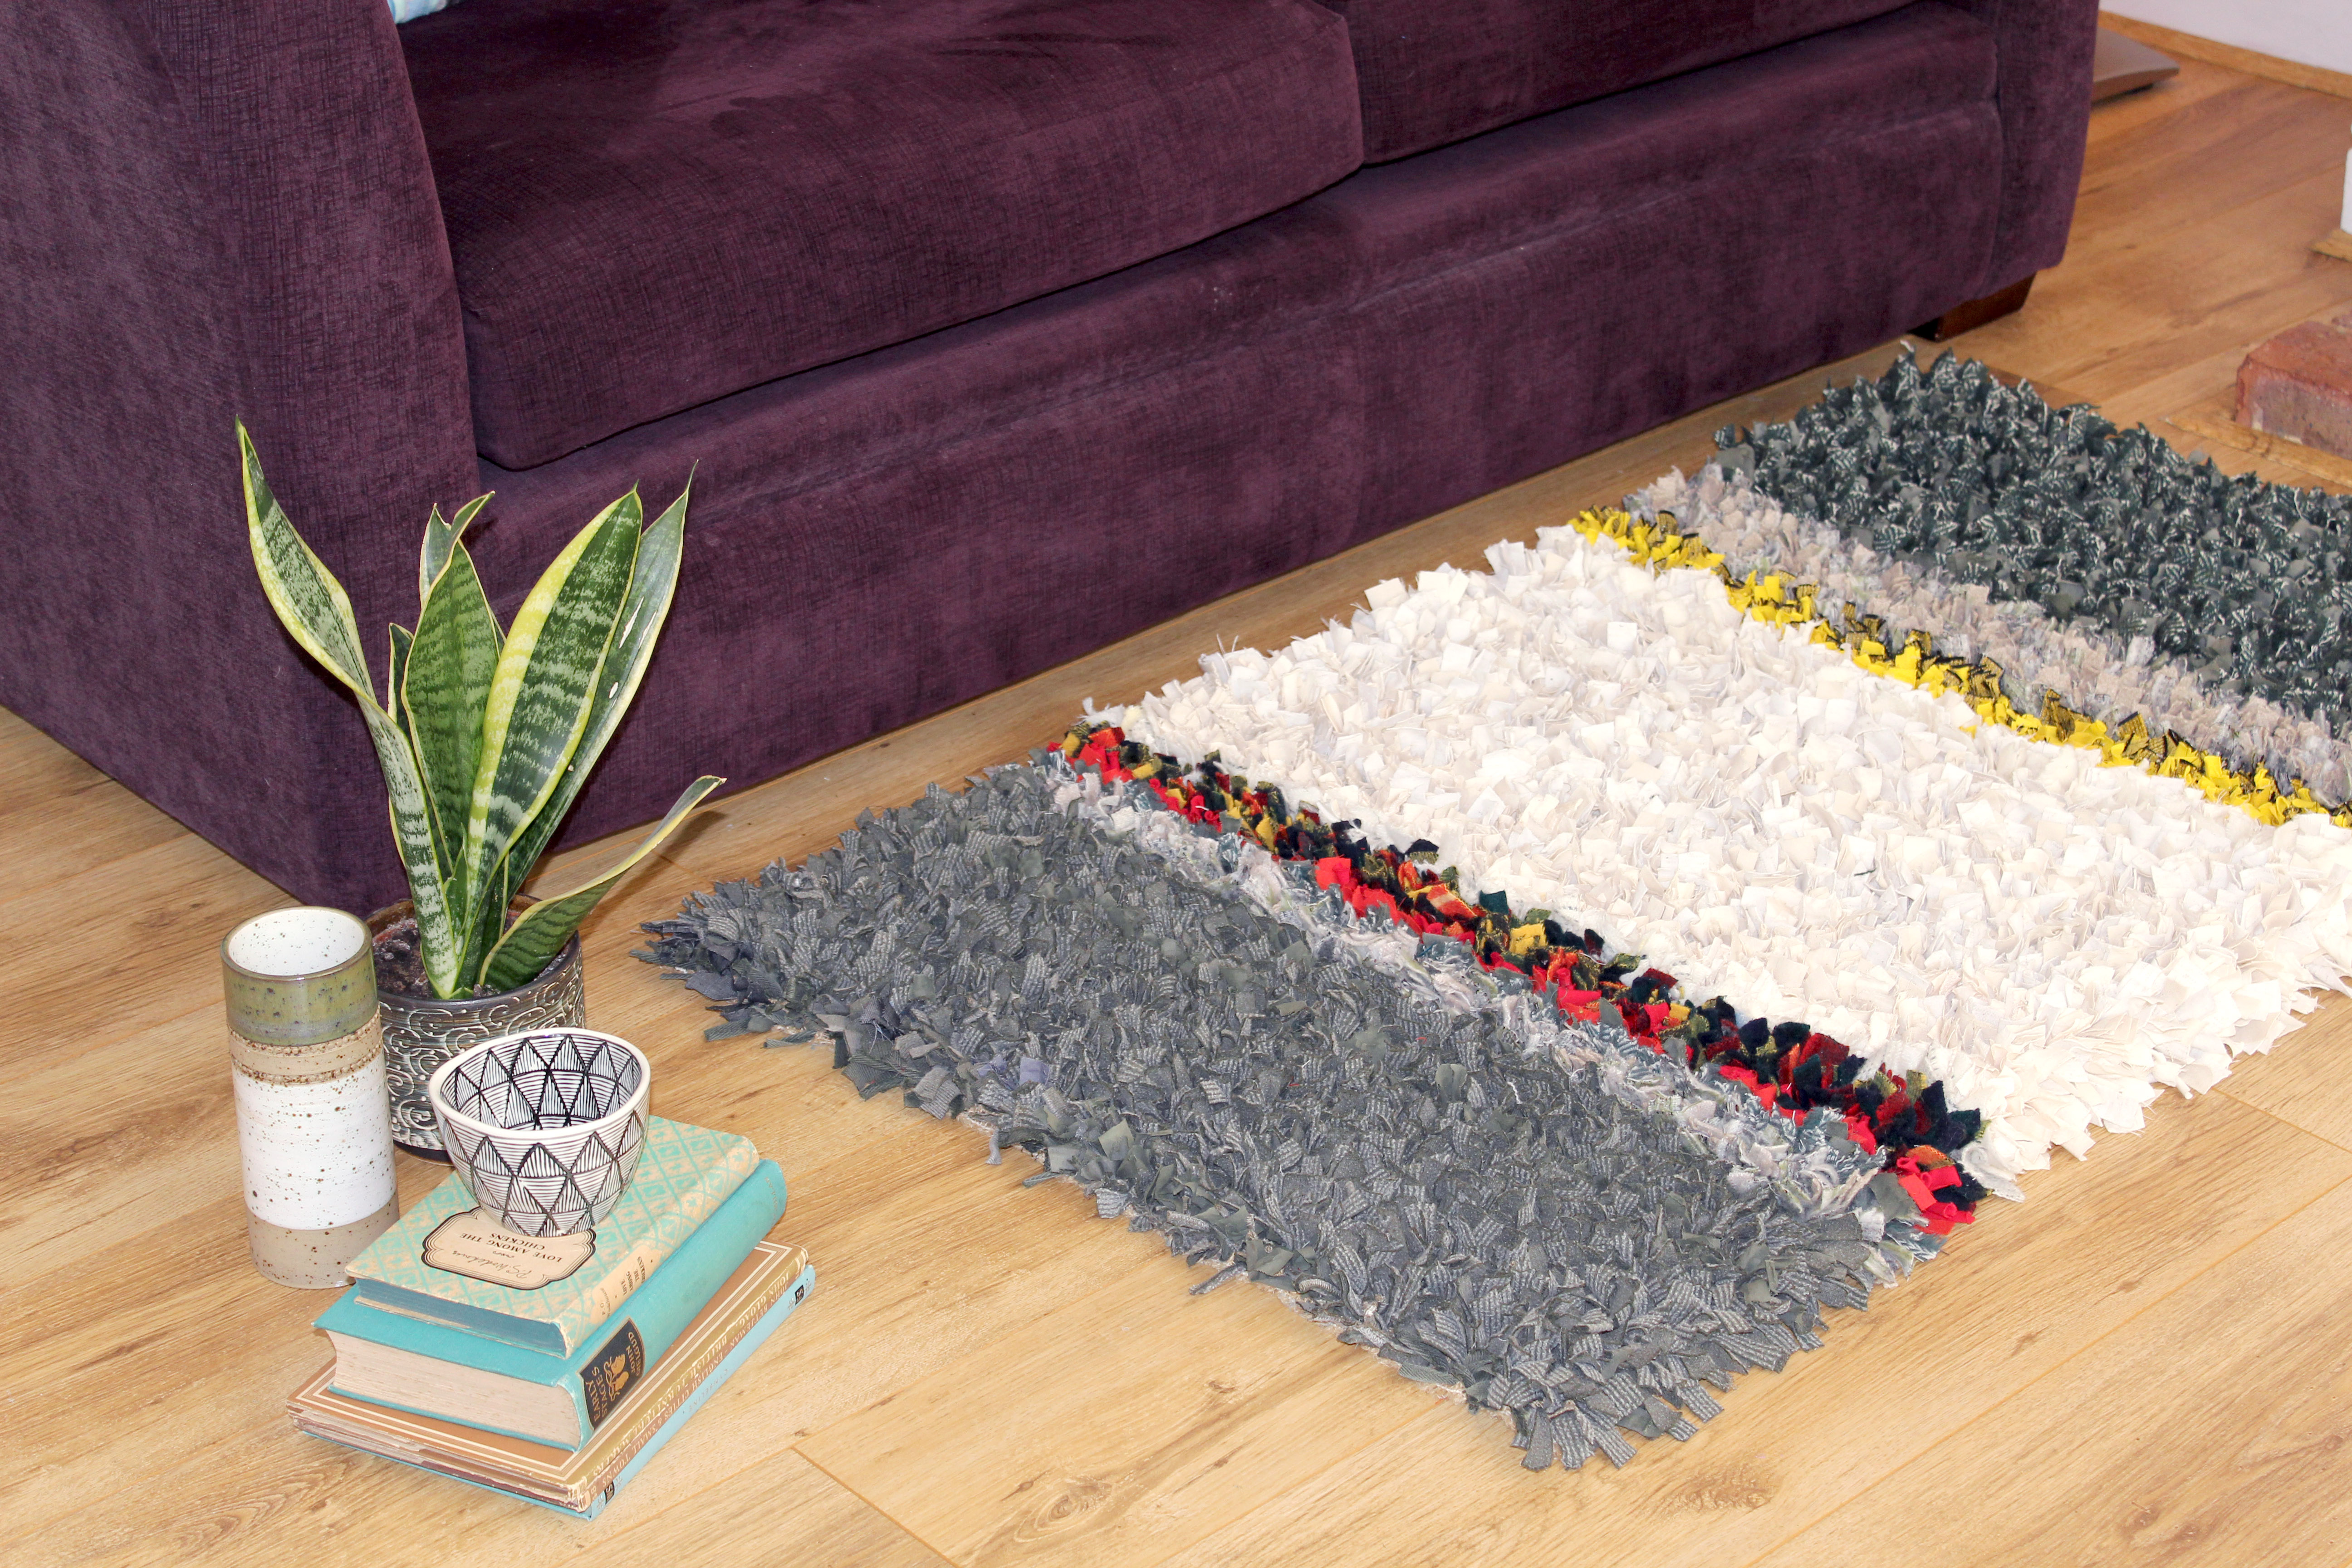 Rag rug made by hand in front of sofa in grey, red, yellow and green colours.